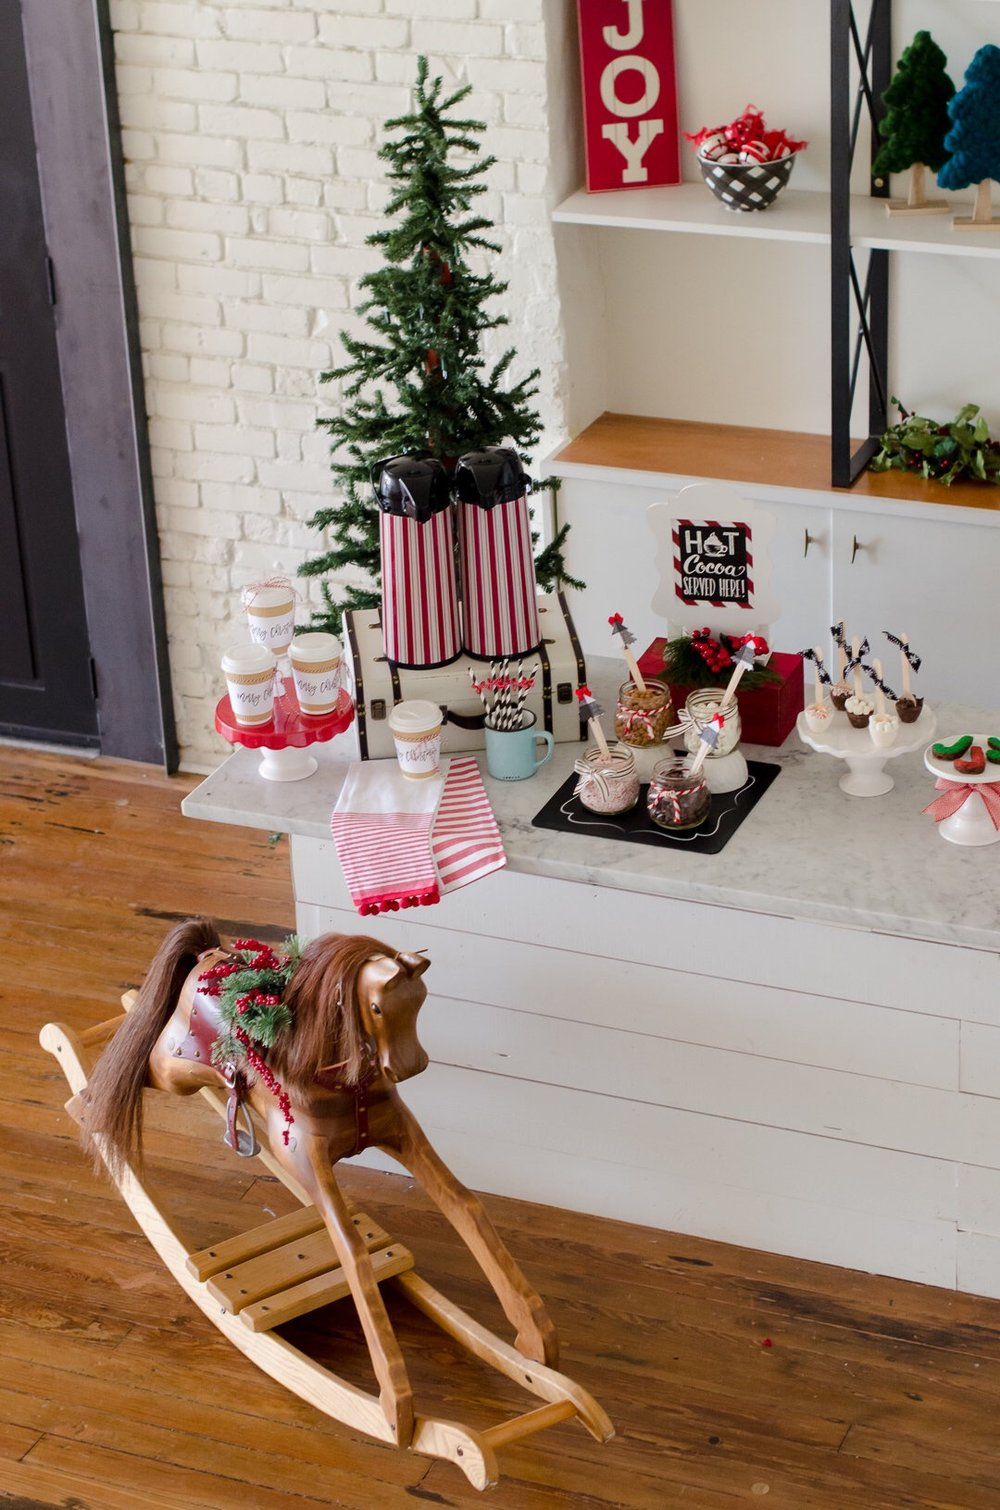 Vintage toys add a touch of childhood to this beautiful Christmas party. See more holiday party inspiration from Austin based party stylist Mint Event Design at www.minteventdesign.com #holidaypartydecor #holidayparty #holidays #partyideas #christmasparty #holidaypartyideas